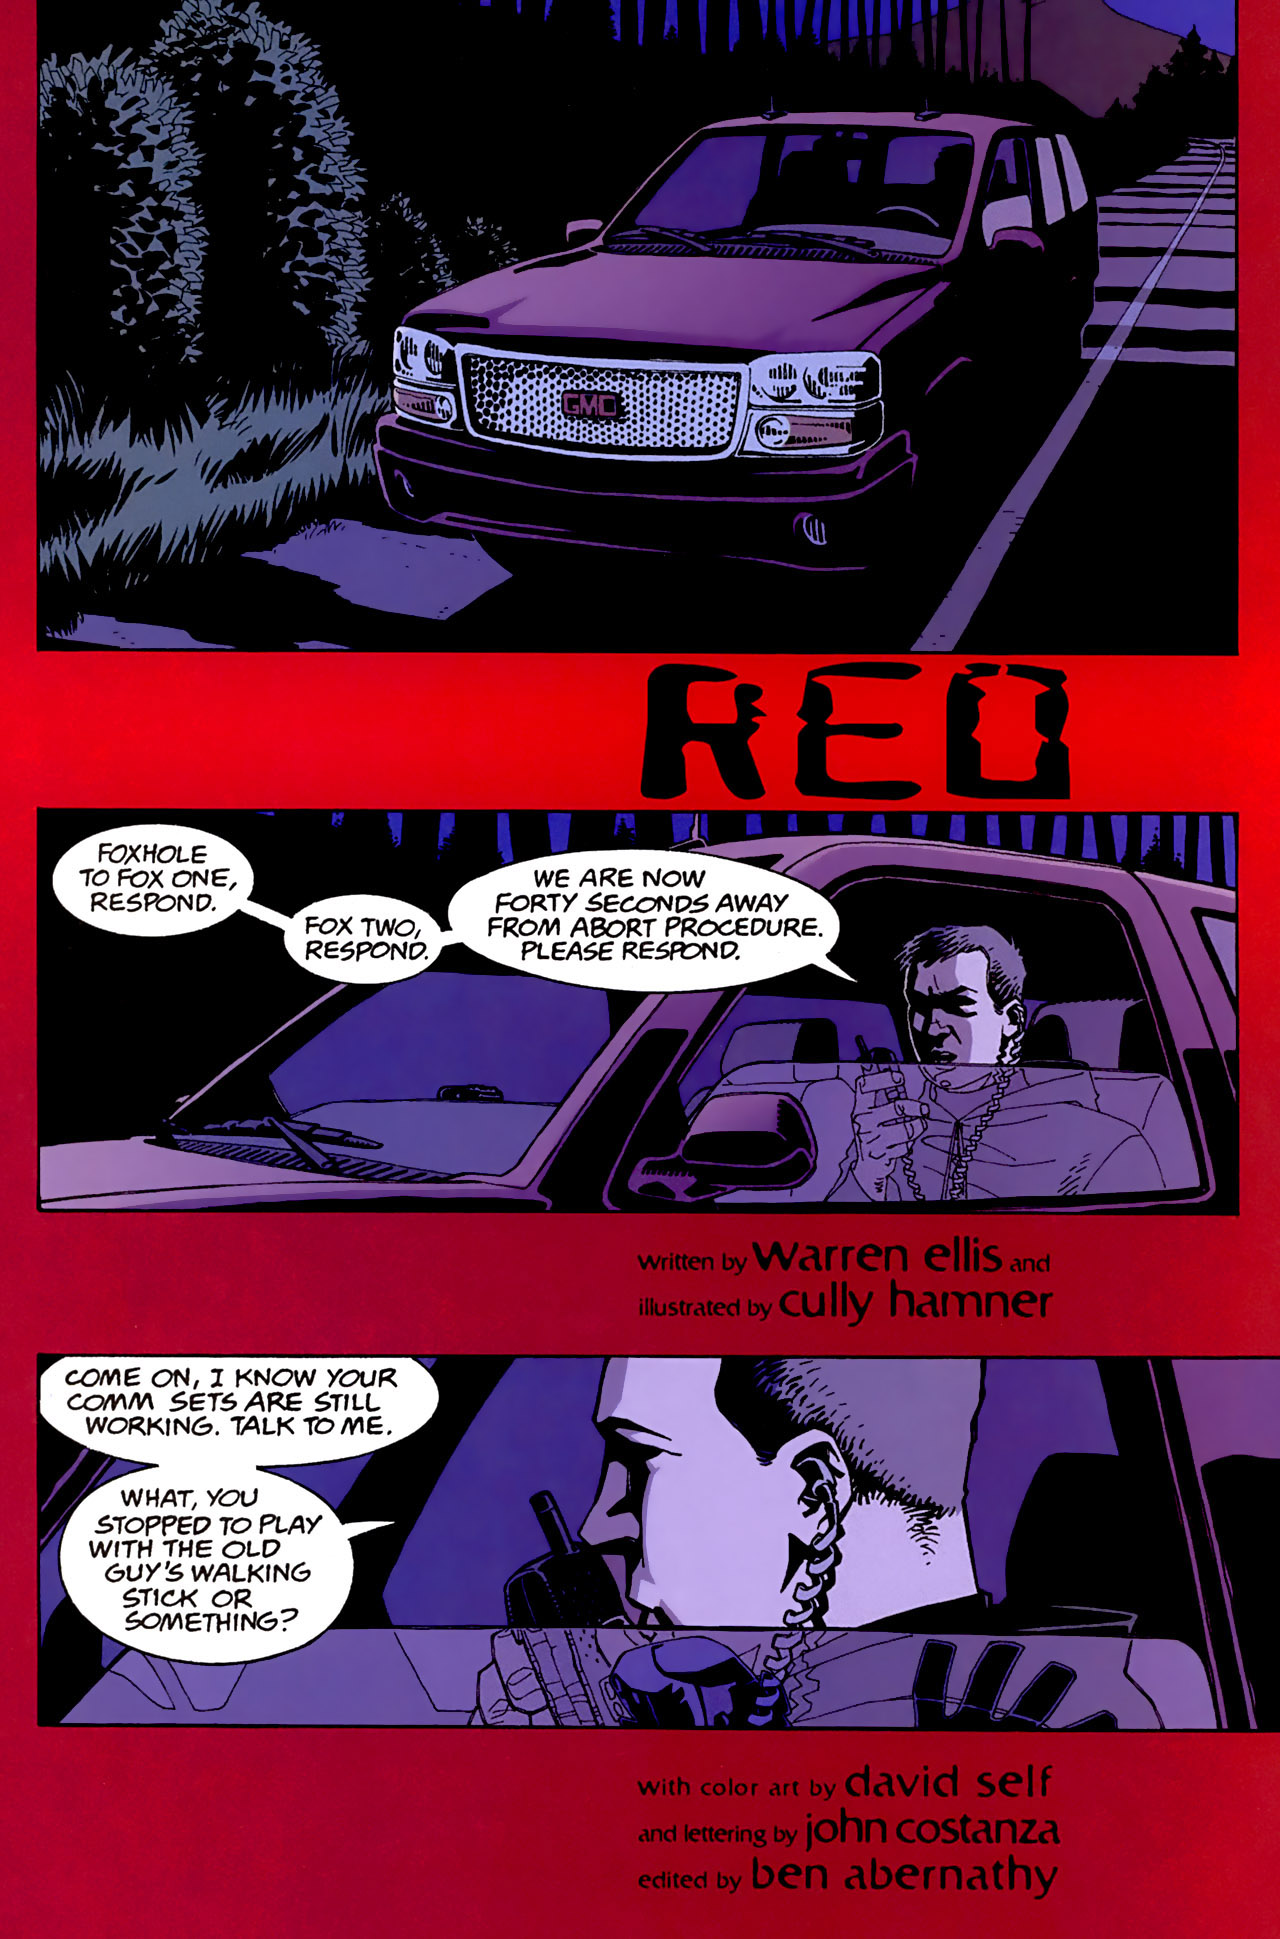 Read online Red comic -  Issue #2 - 2